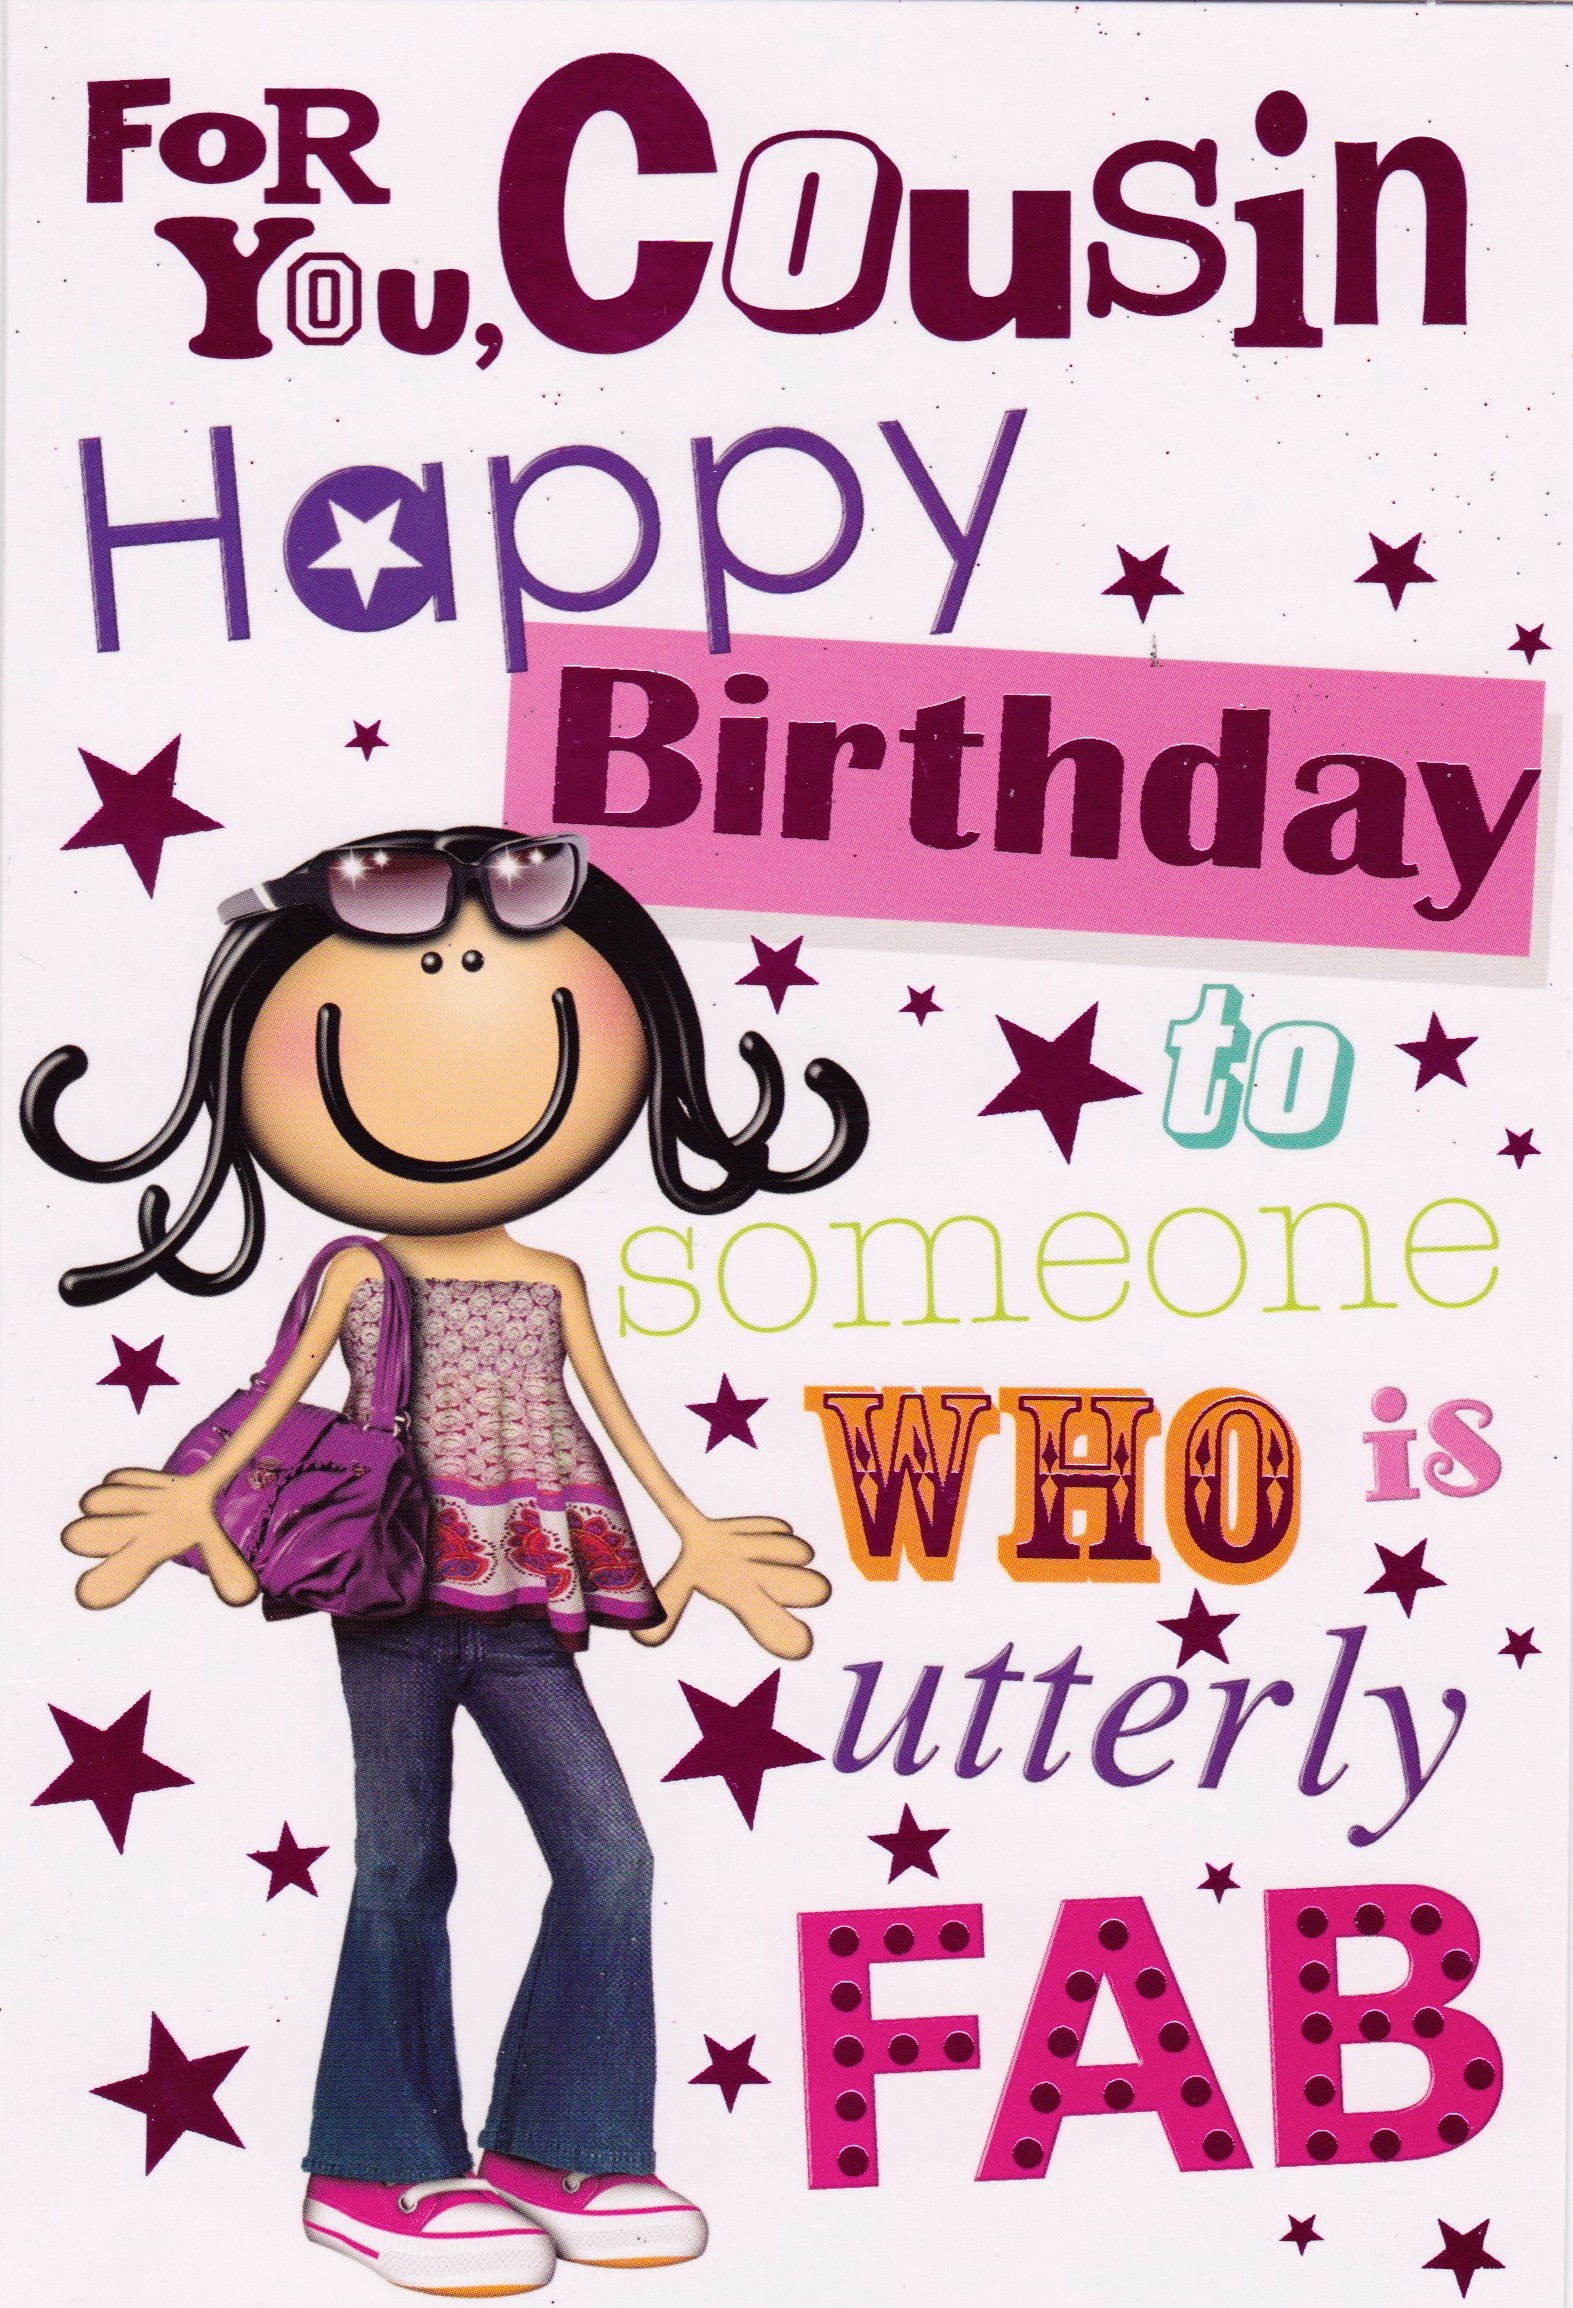 birthday message for cousin female tagalog ; funny-birthday-wishes-for-cousin-contemporary-iiiii-happy-birthday-birthday-wishes-pinterest-concept-of-funny-birthday-wishes-for-cousin